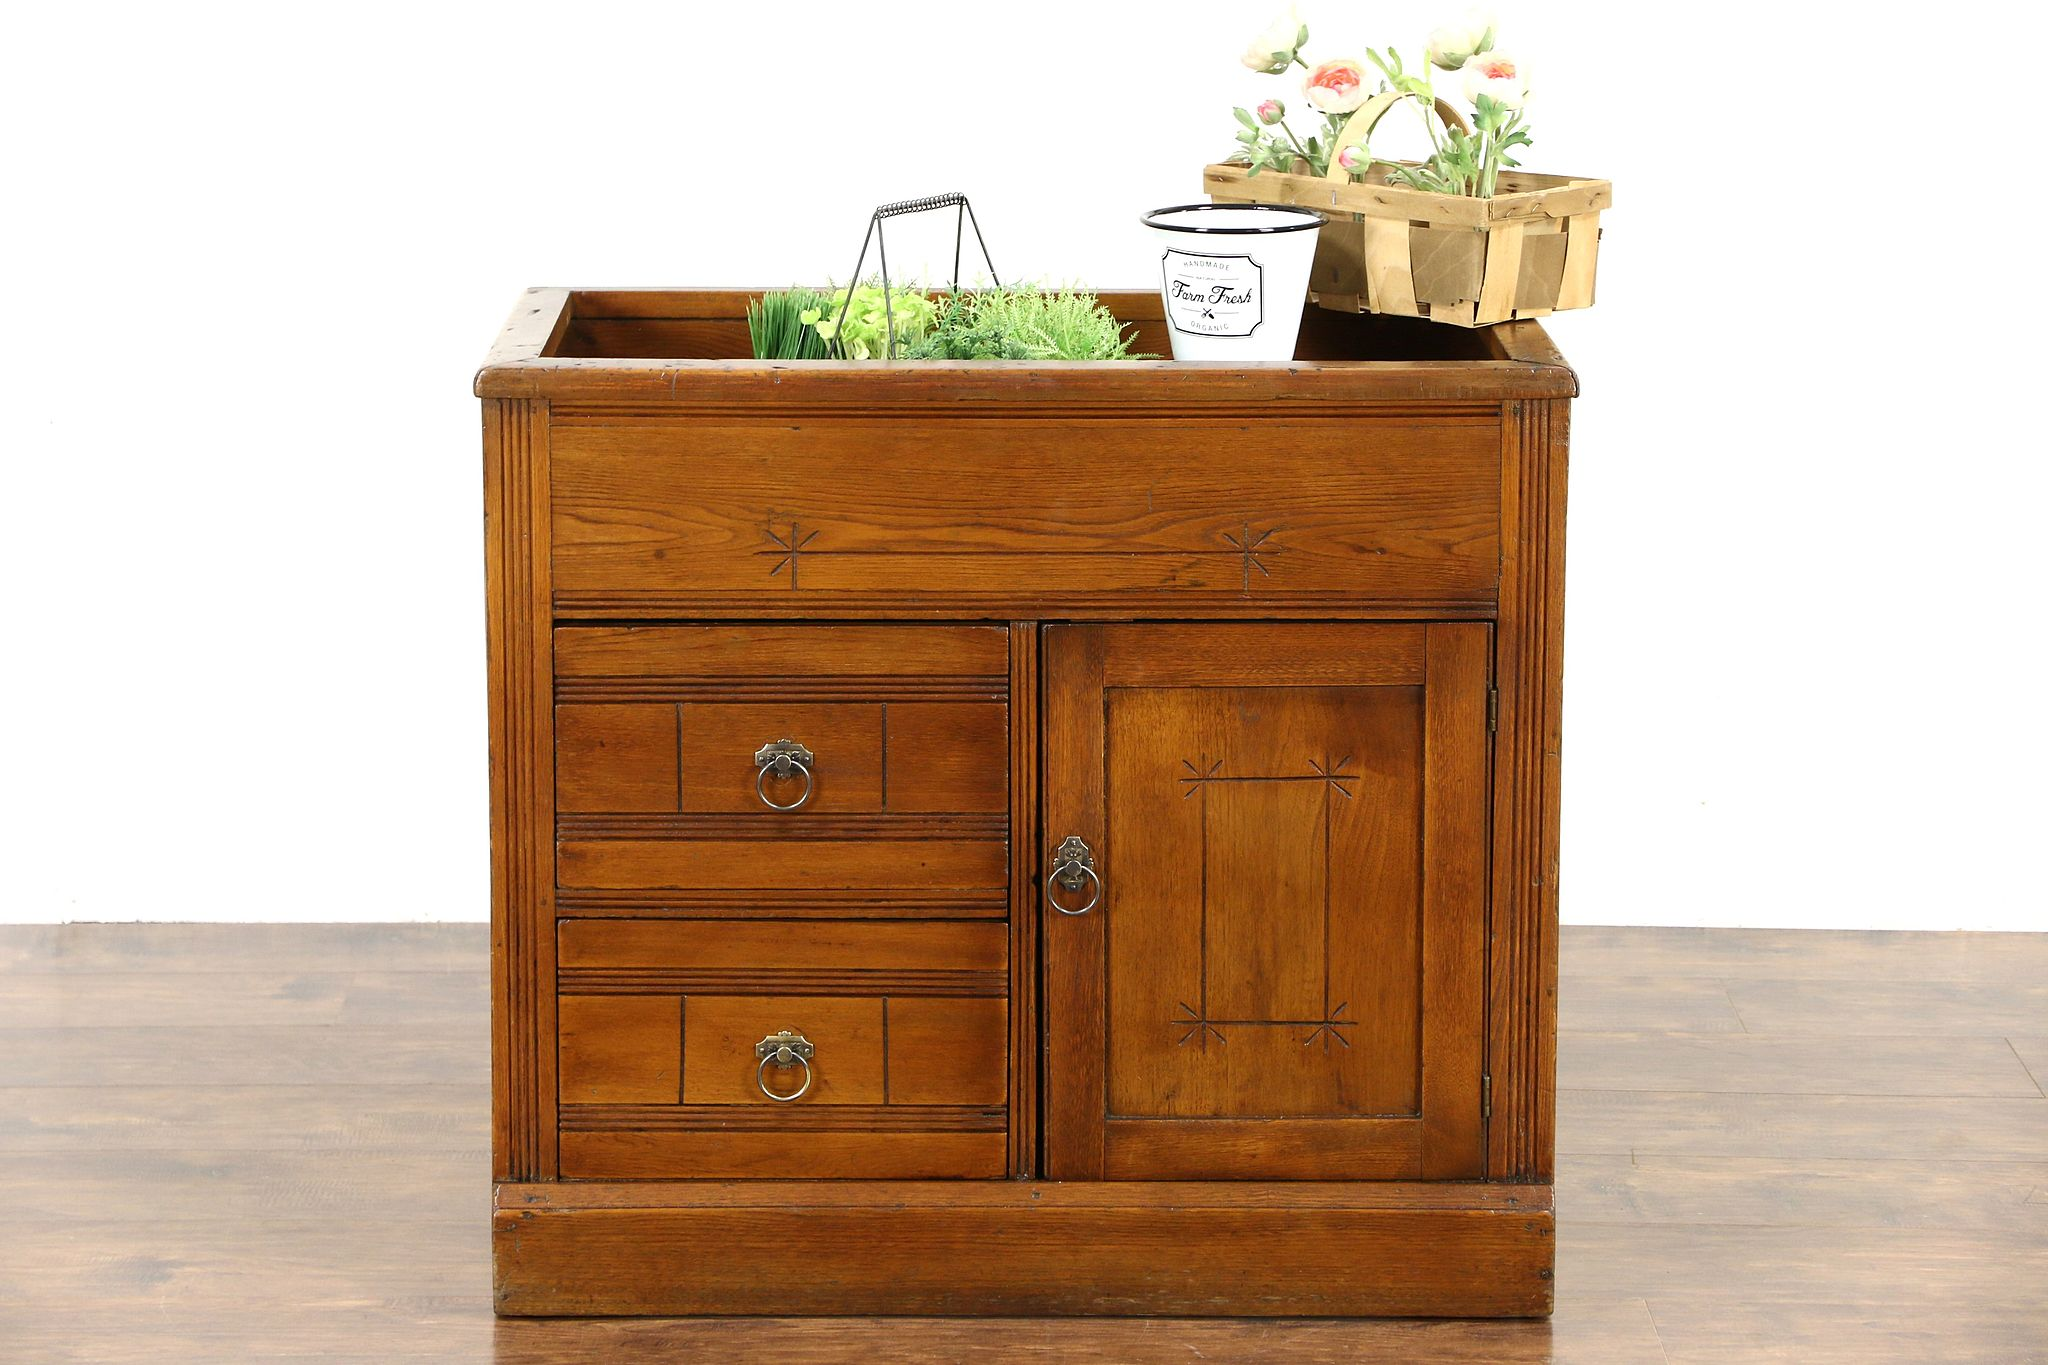 vanity guide complete w apartment fit therapy max a furniture dry sink using to bathroom vintage as the